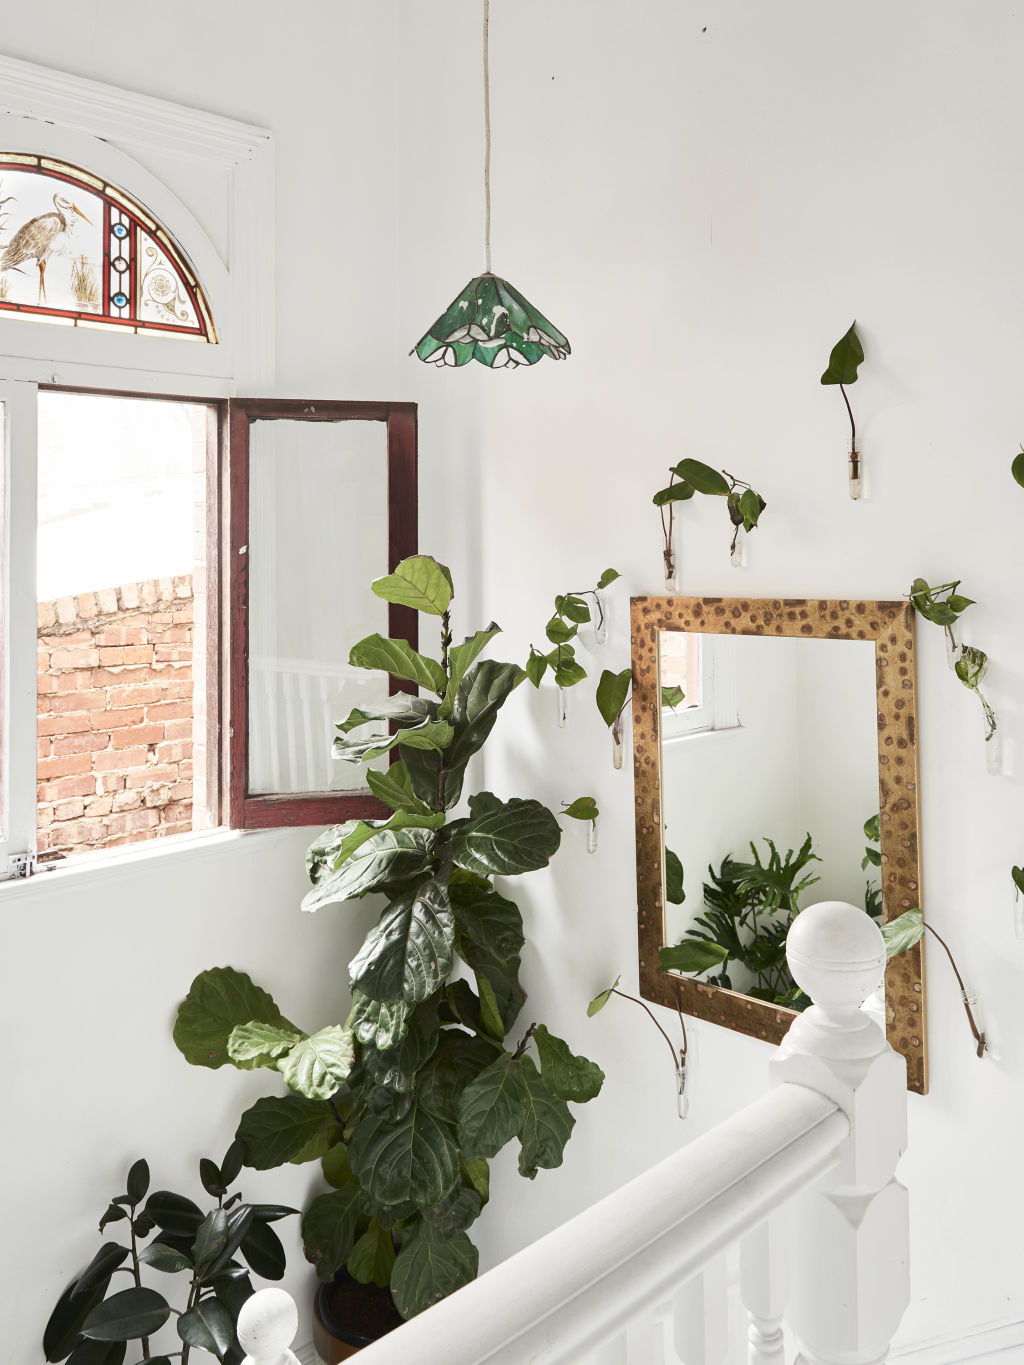 The stairway, where Jenna drinks her morning coffee, is 'a light-filled dream', she says. It showcases the little quirky design additions to the home, including the stained glass window and glass lighting fixtures. Styling: Annie Portelli.